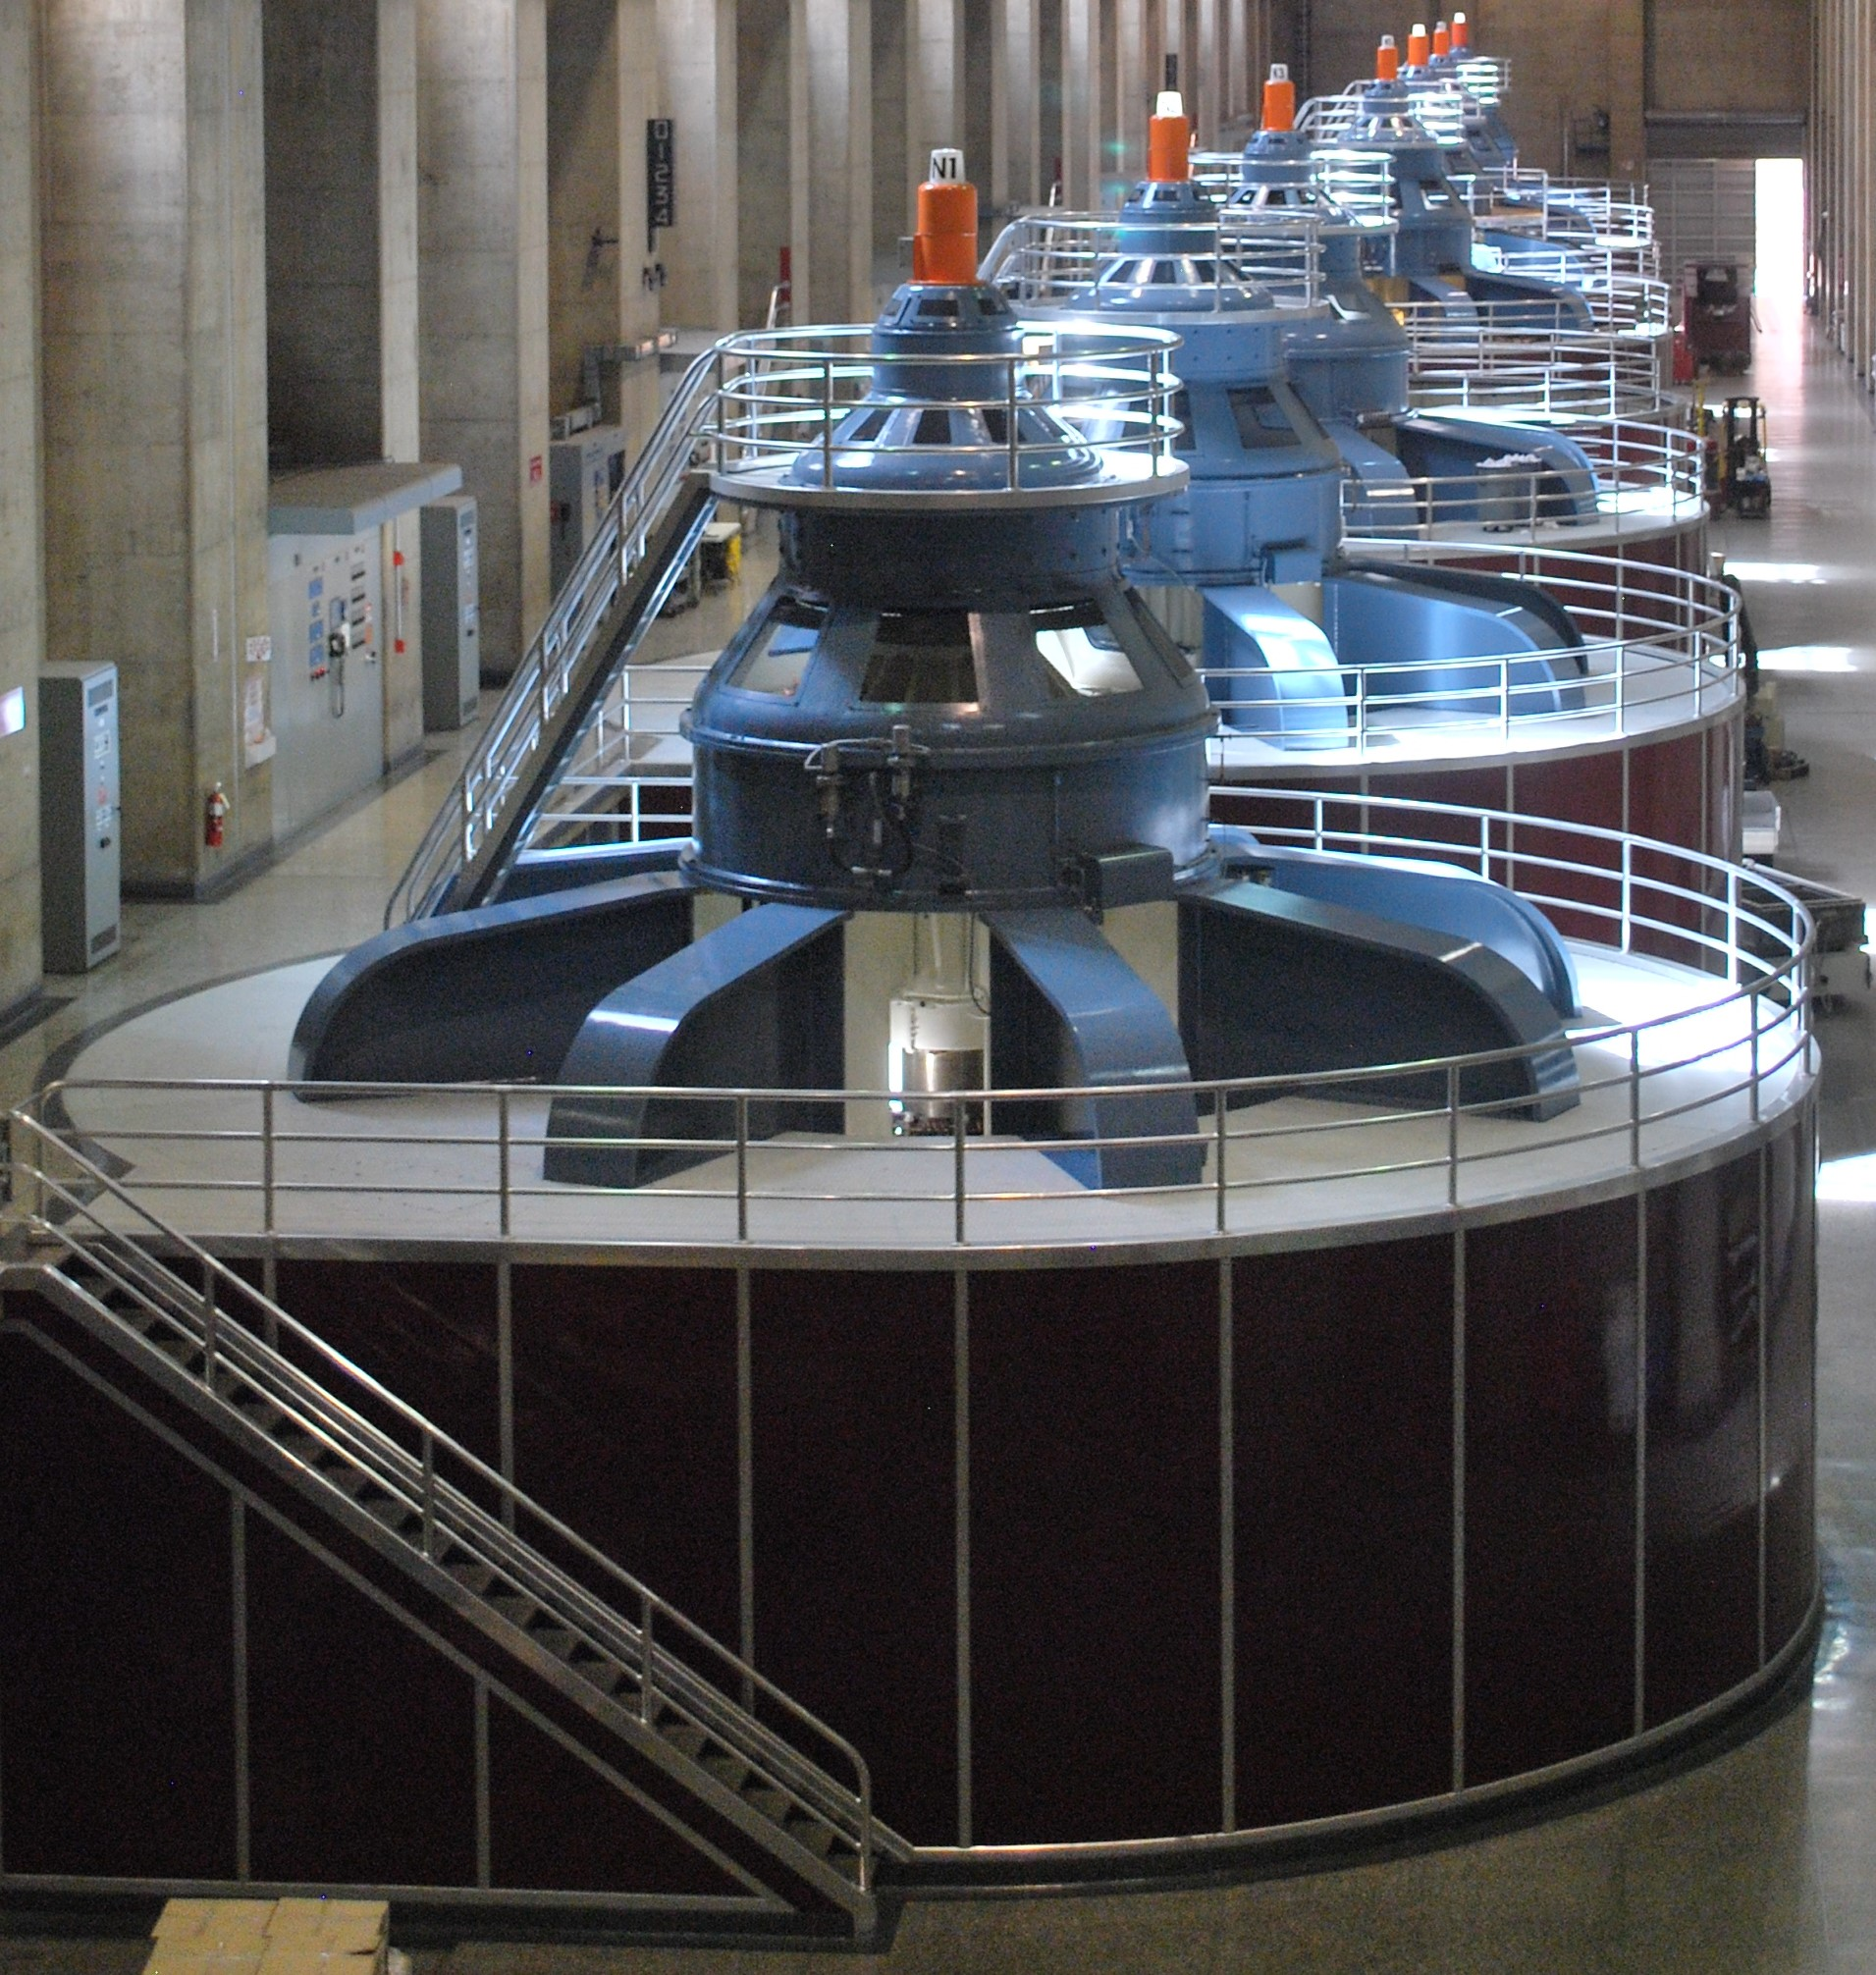 photo of electrical turbines at Hoover Dam power plant